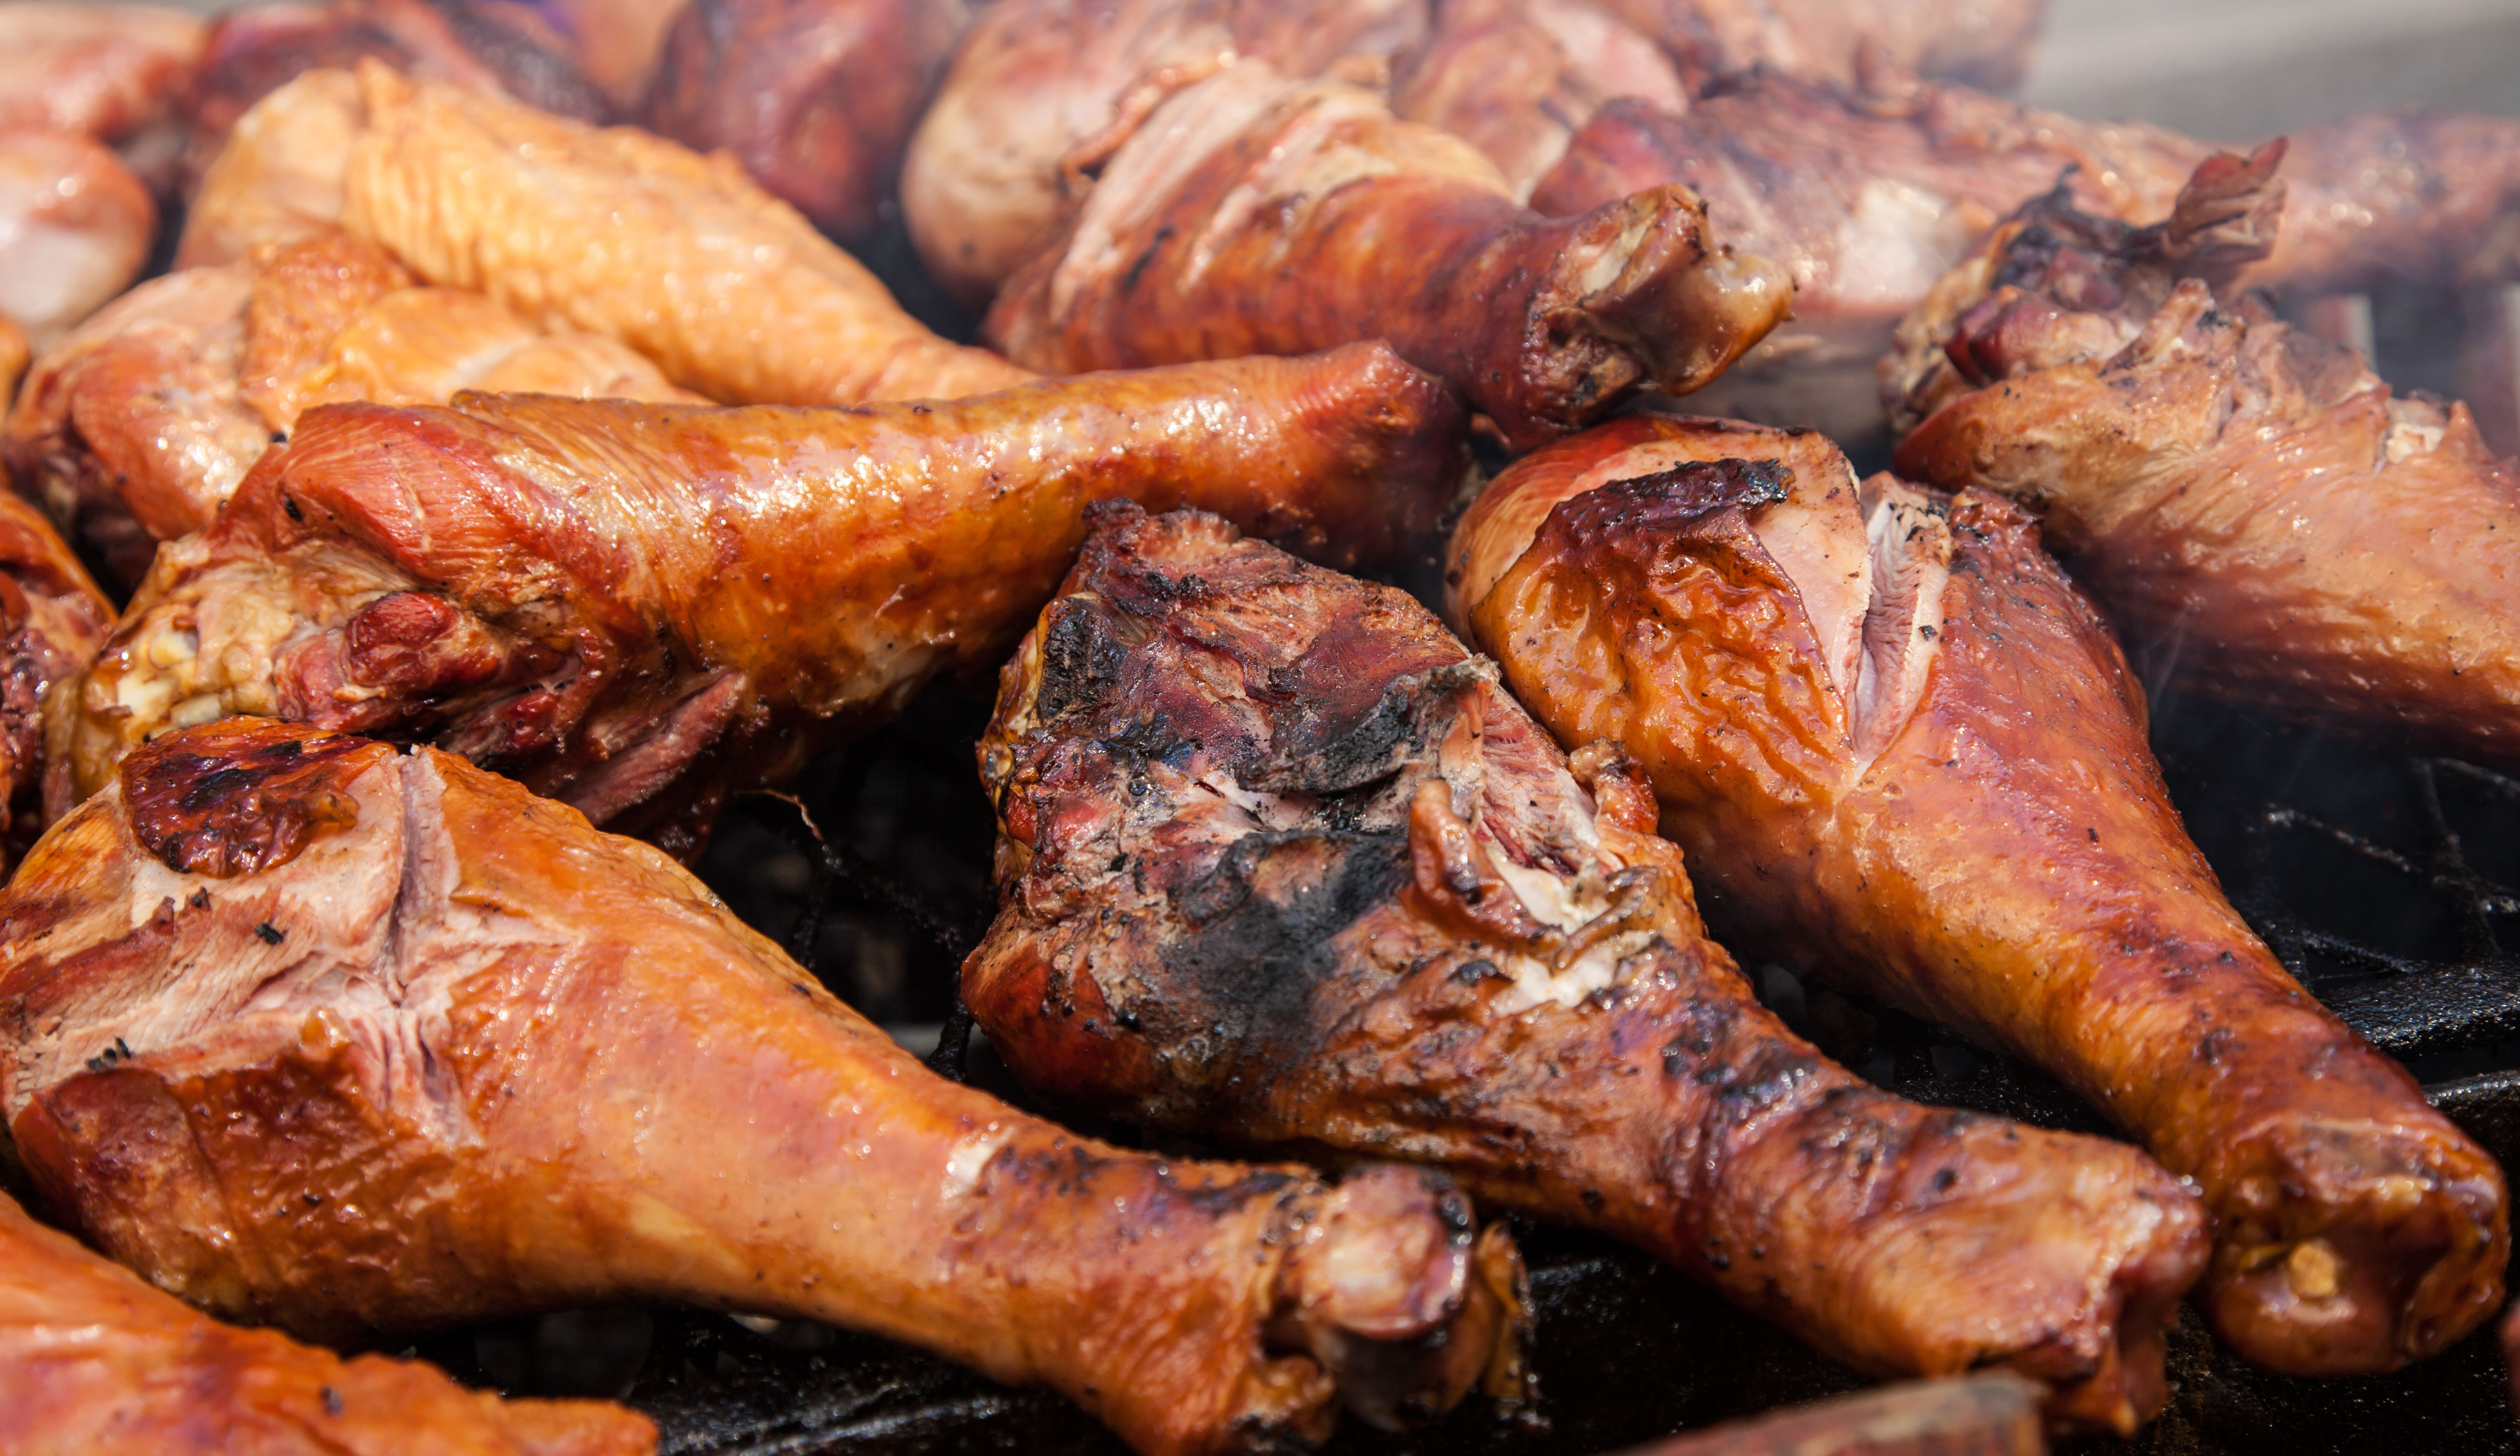 How To Grill Turkey Legs